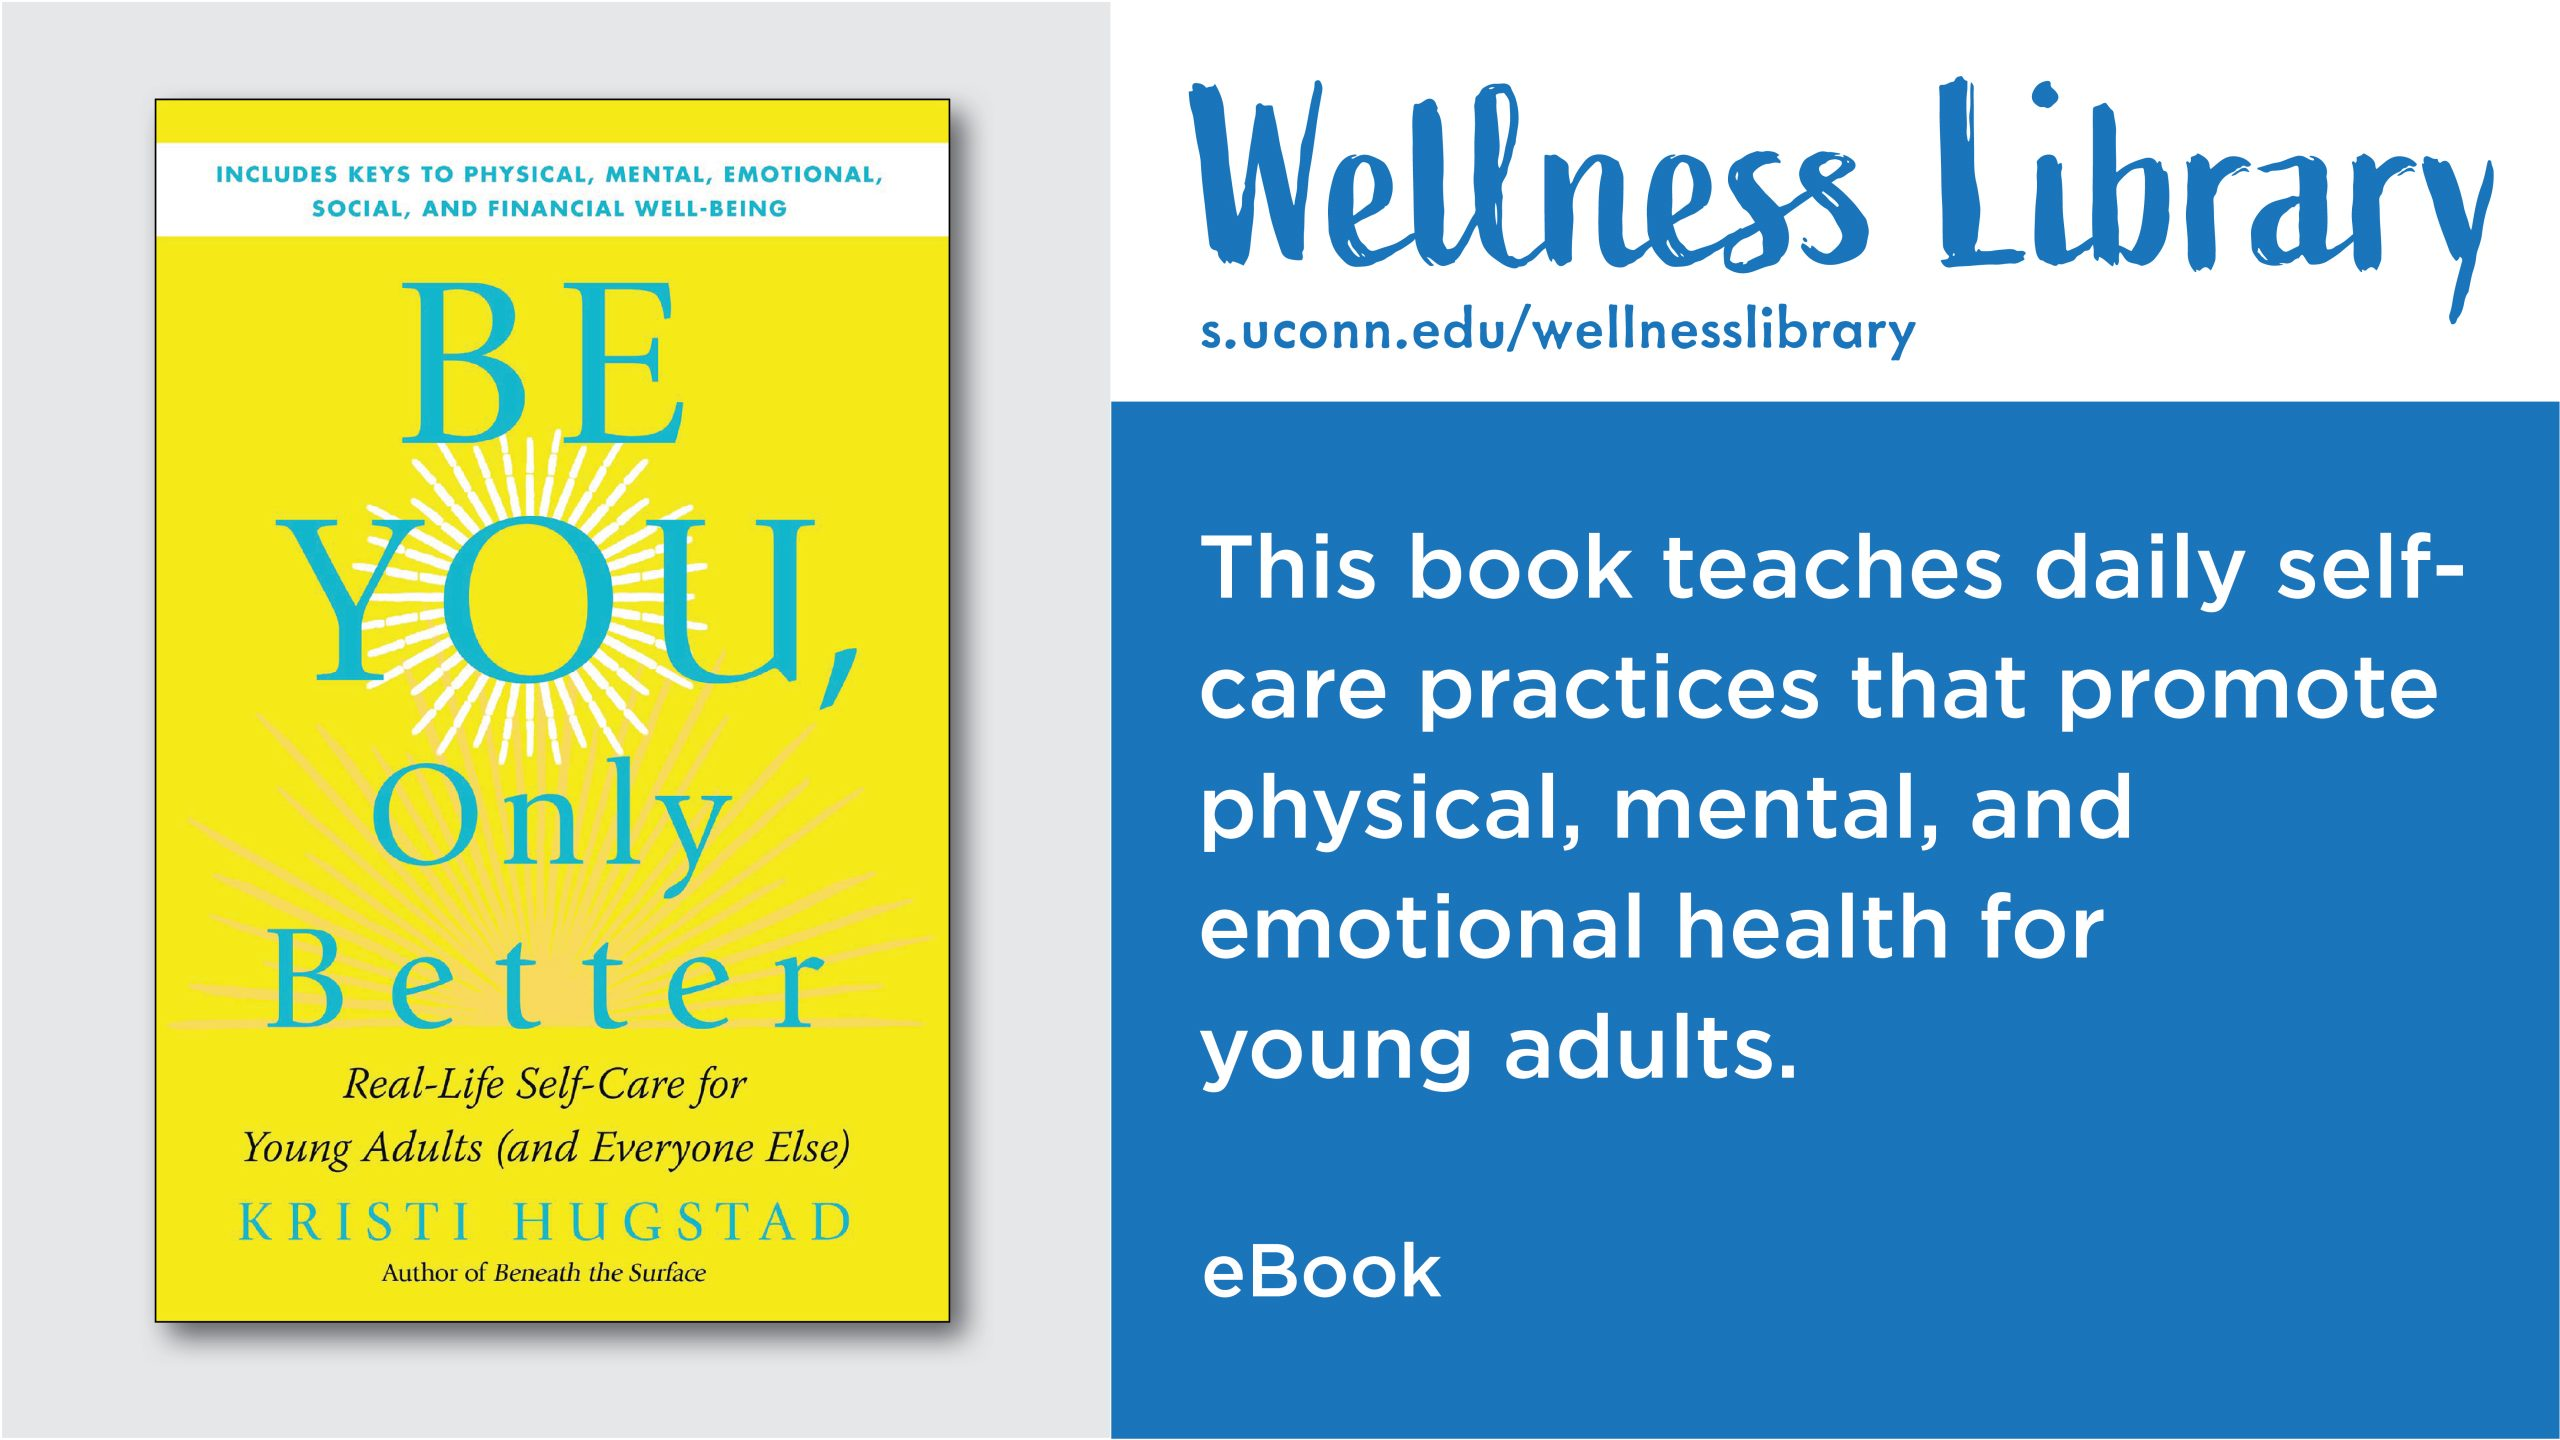 Wellness Library - This book teaches daily self-care practices that promote physical, mental, and emotional health for young adults. eBook